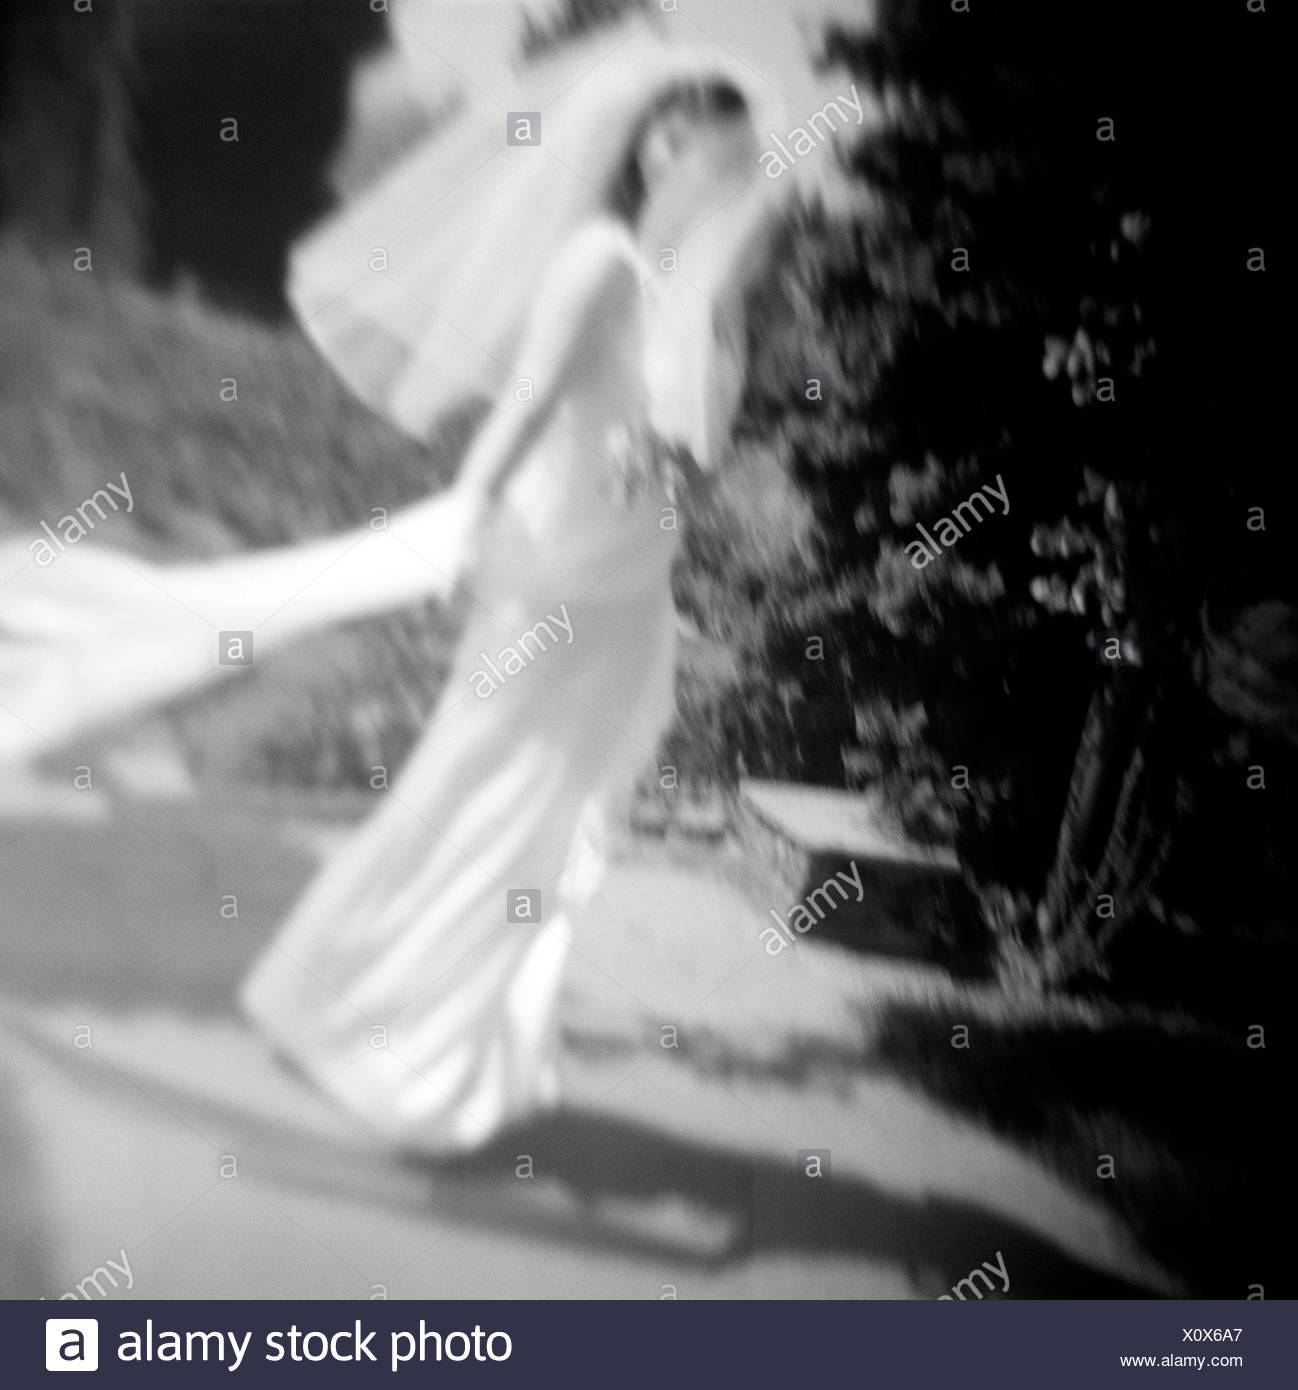 Blurry Bride in Garden - Stock Image